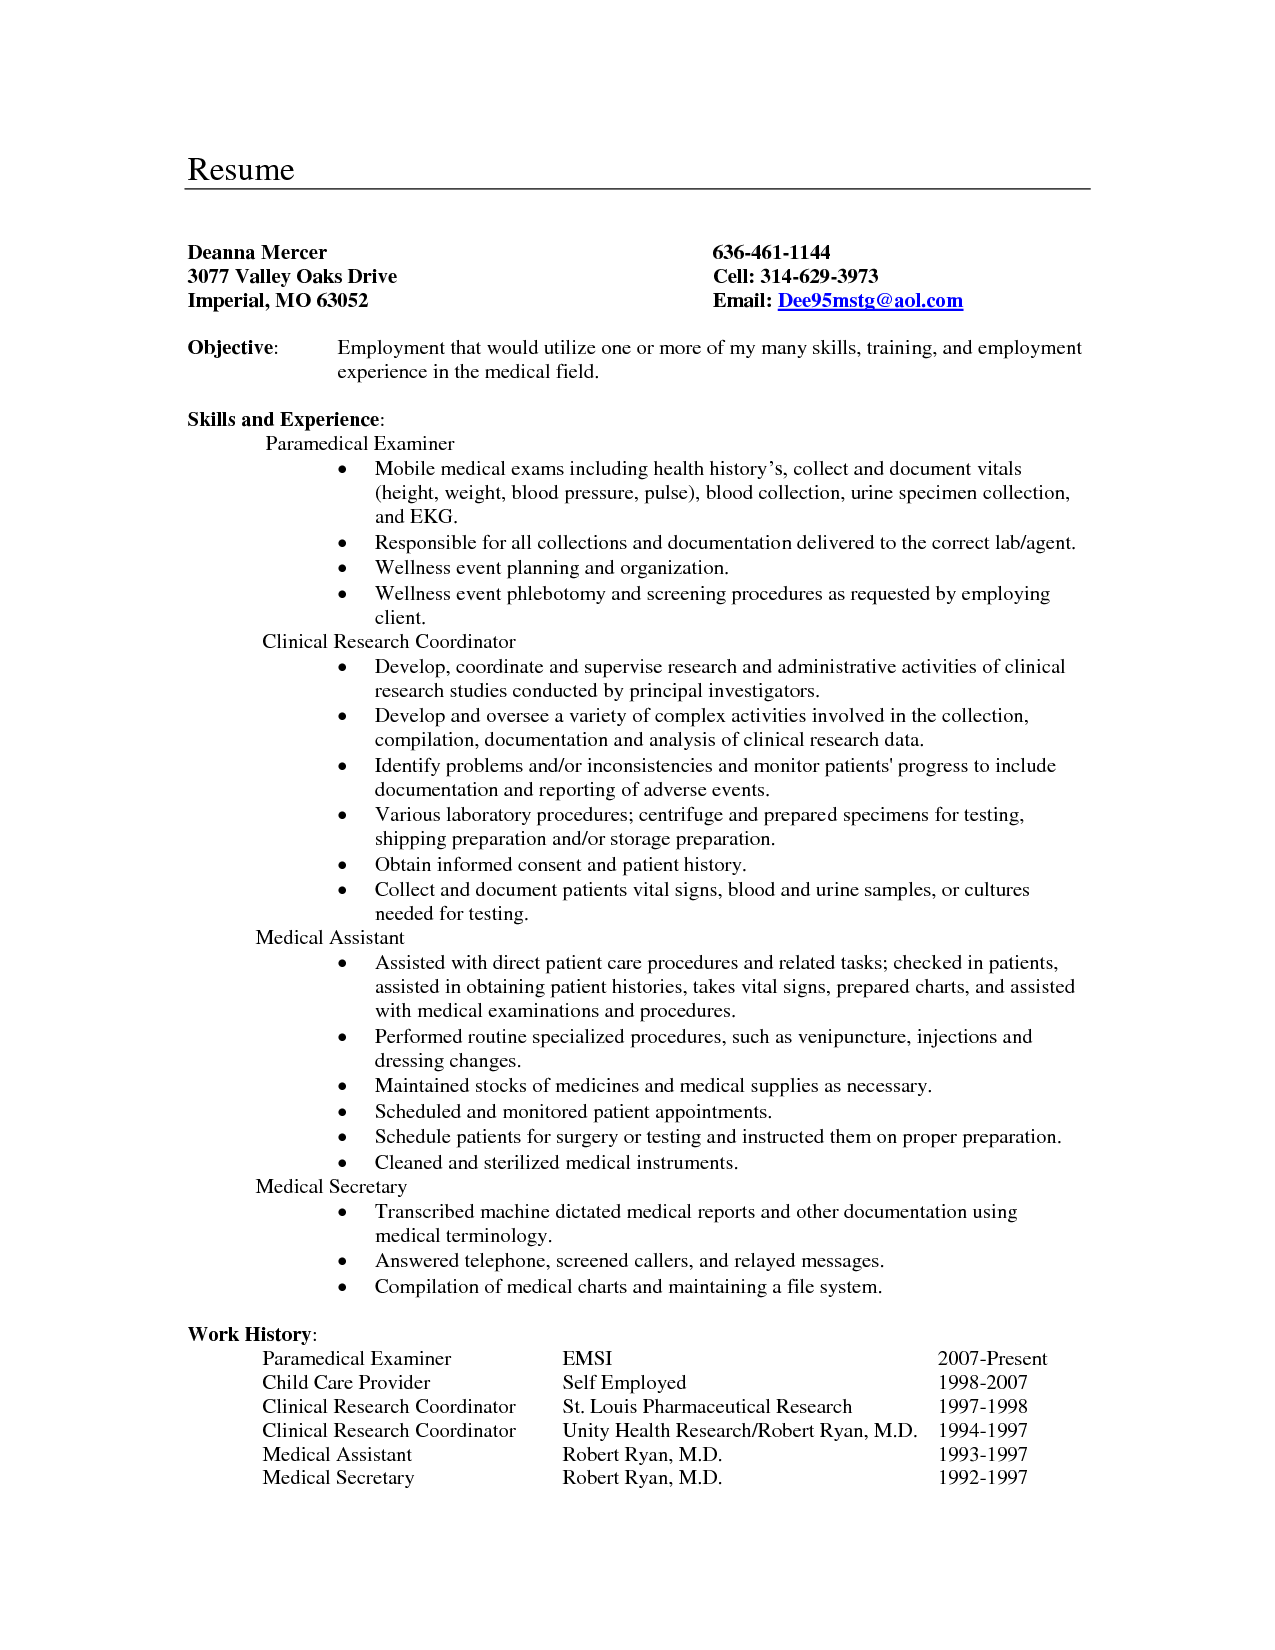 Medical Secretary Resume Objective Examples North